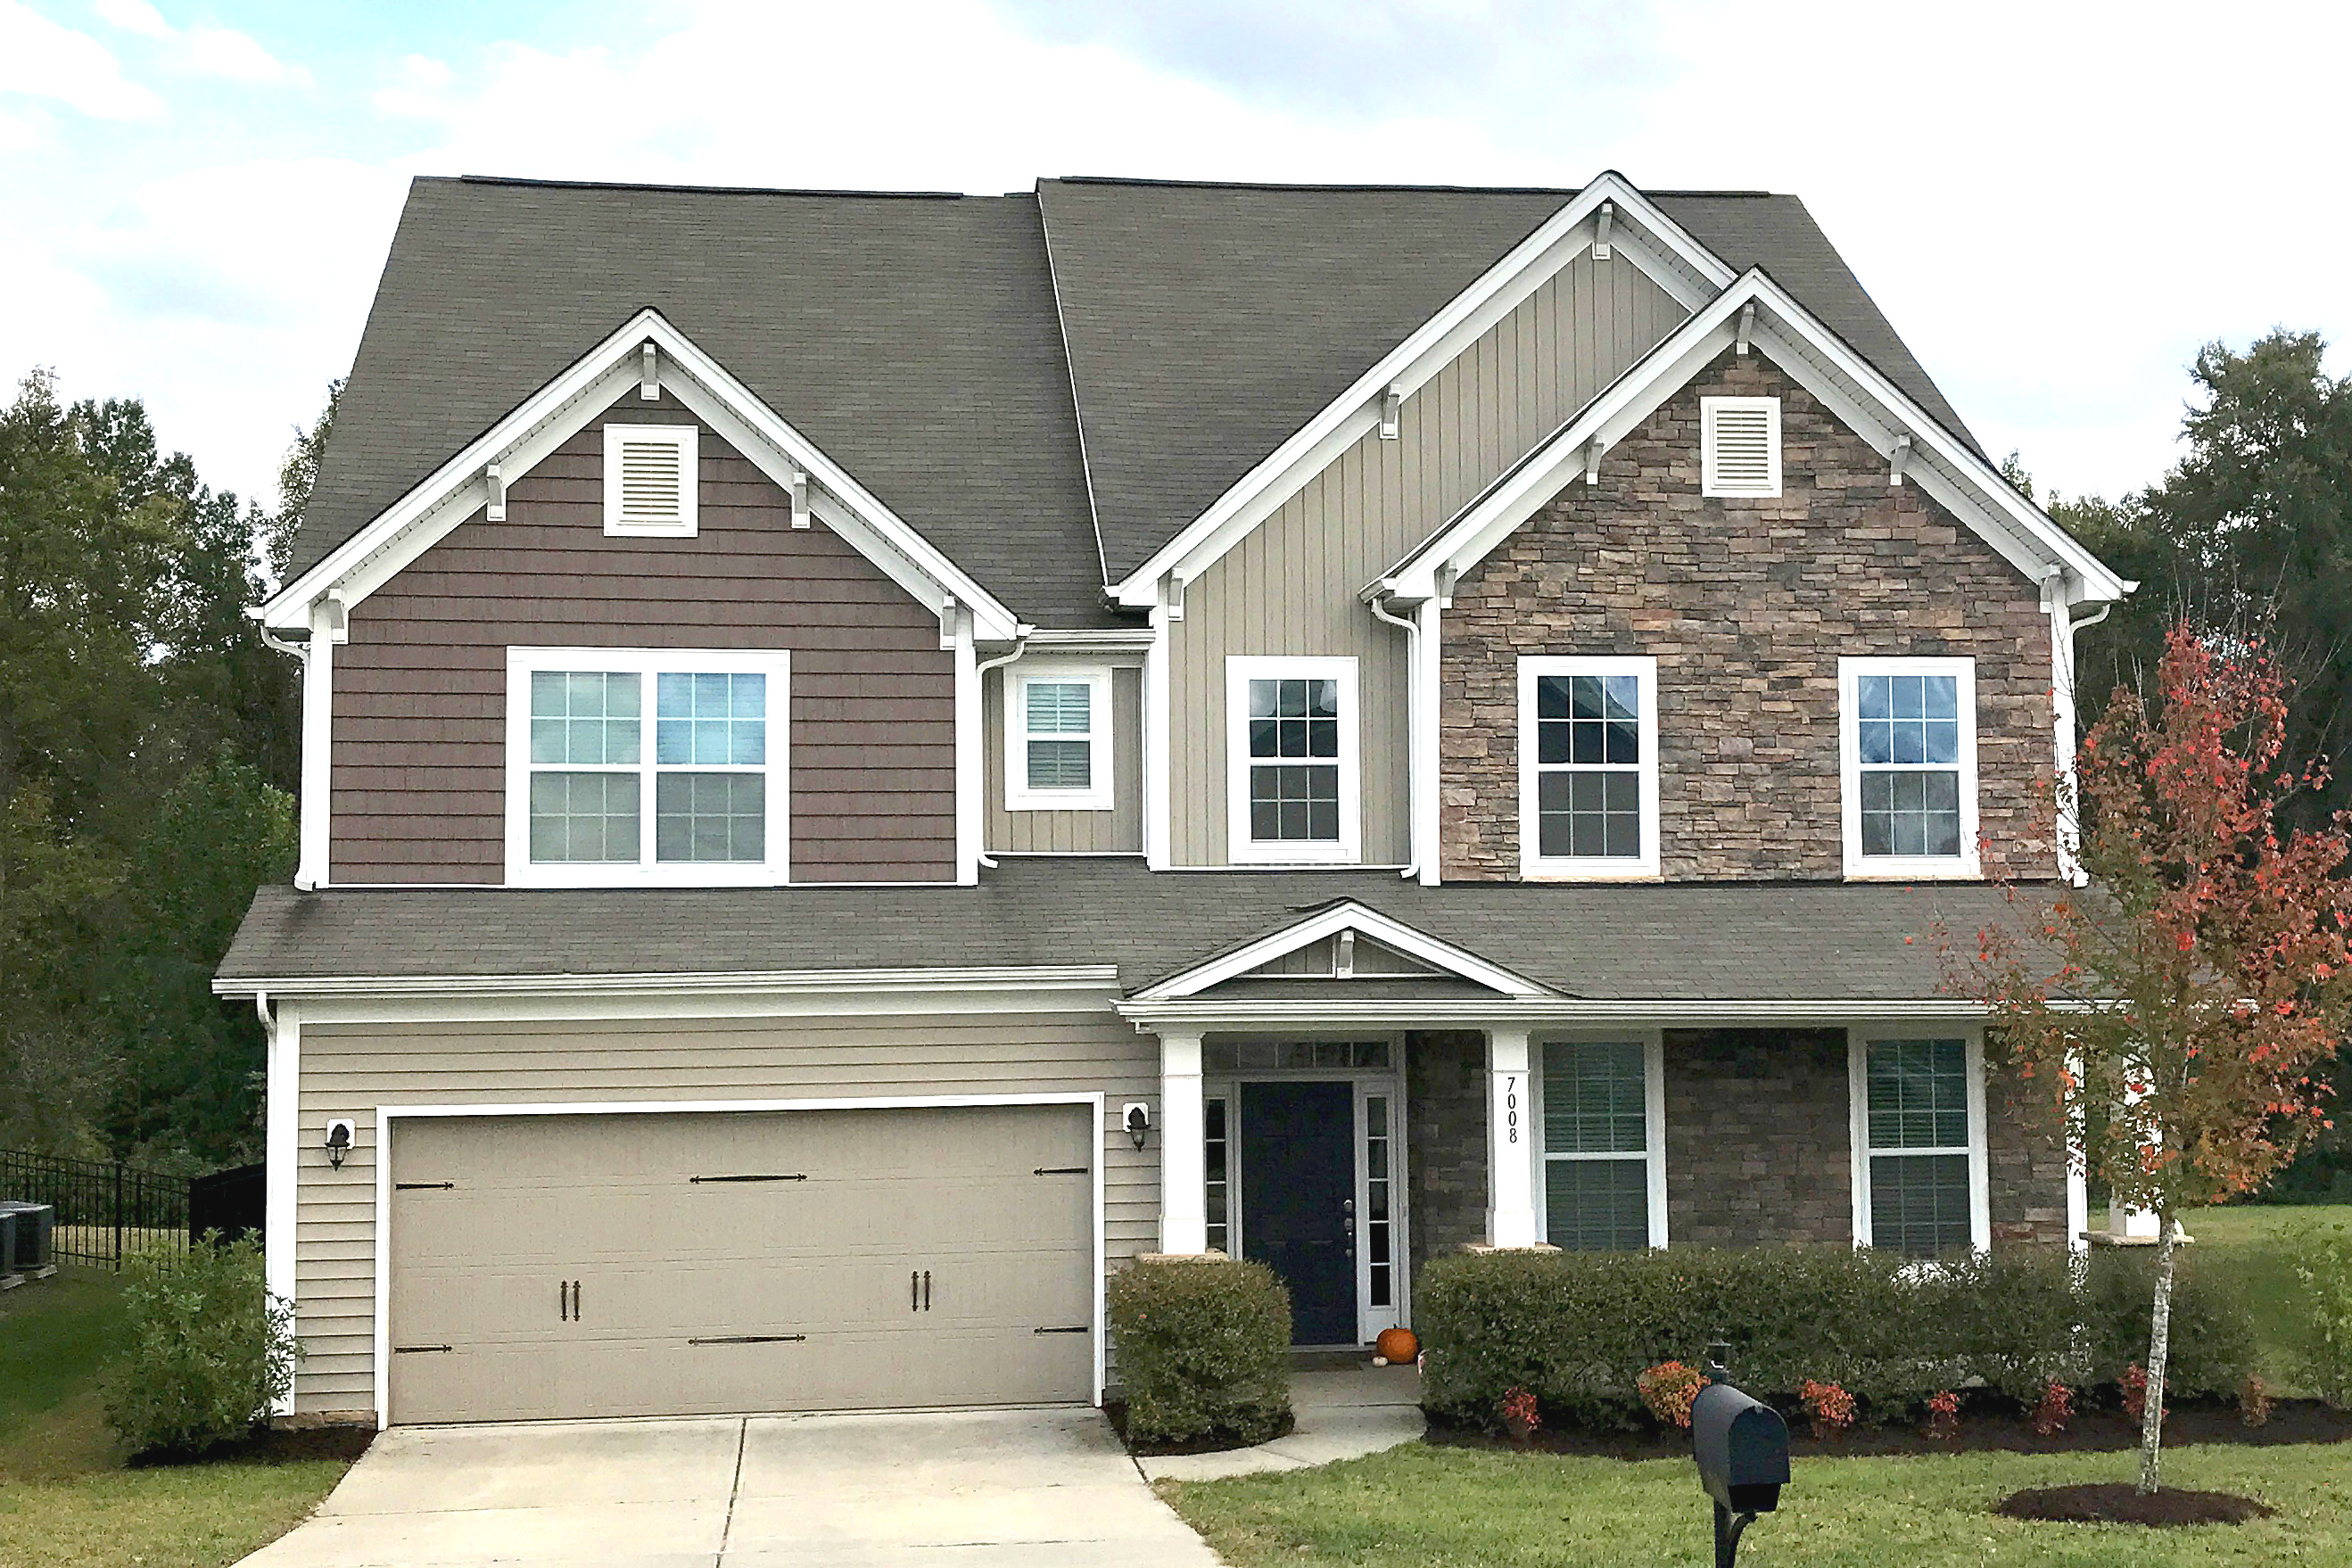 Just listed by don anthony realty 5 bedroom 3 5 bath home - 5 bedroom houses for sale in charlotte nc ...